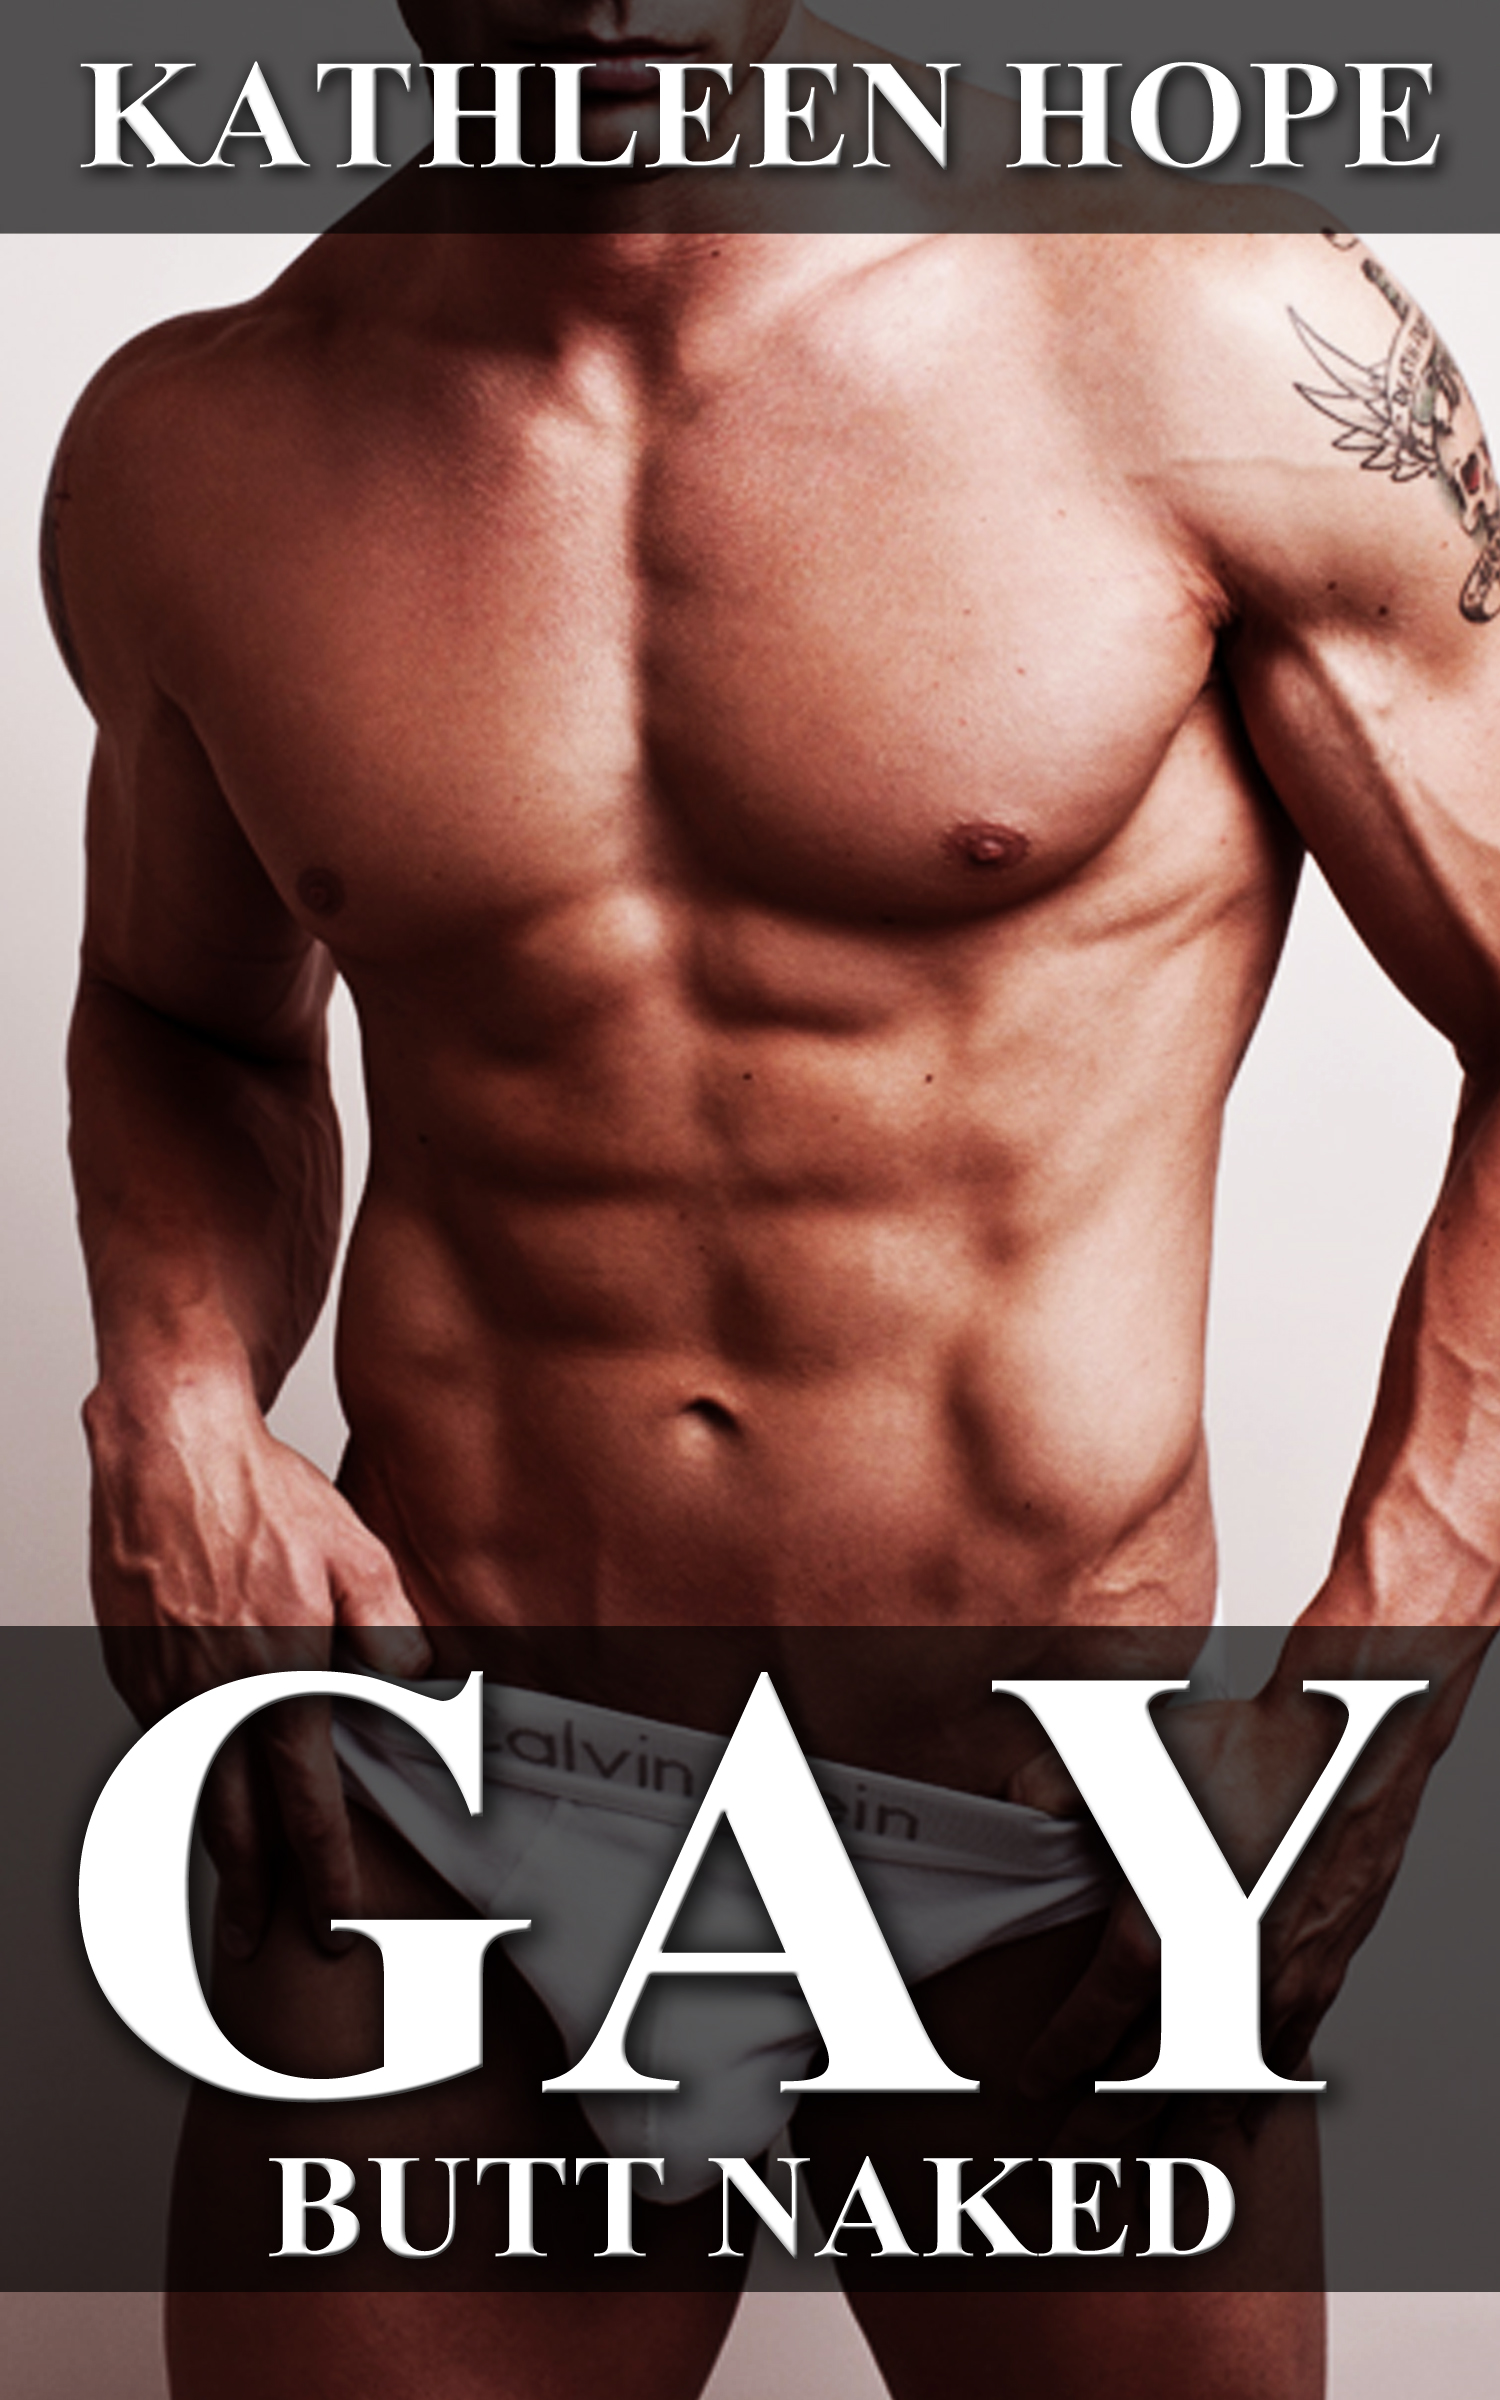 Gay: butt naked